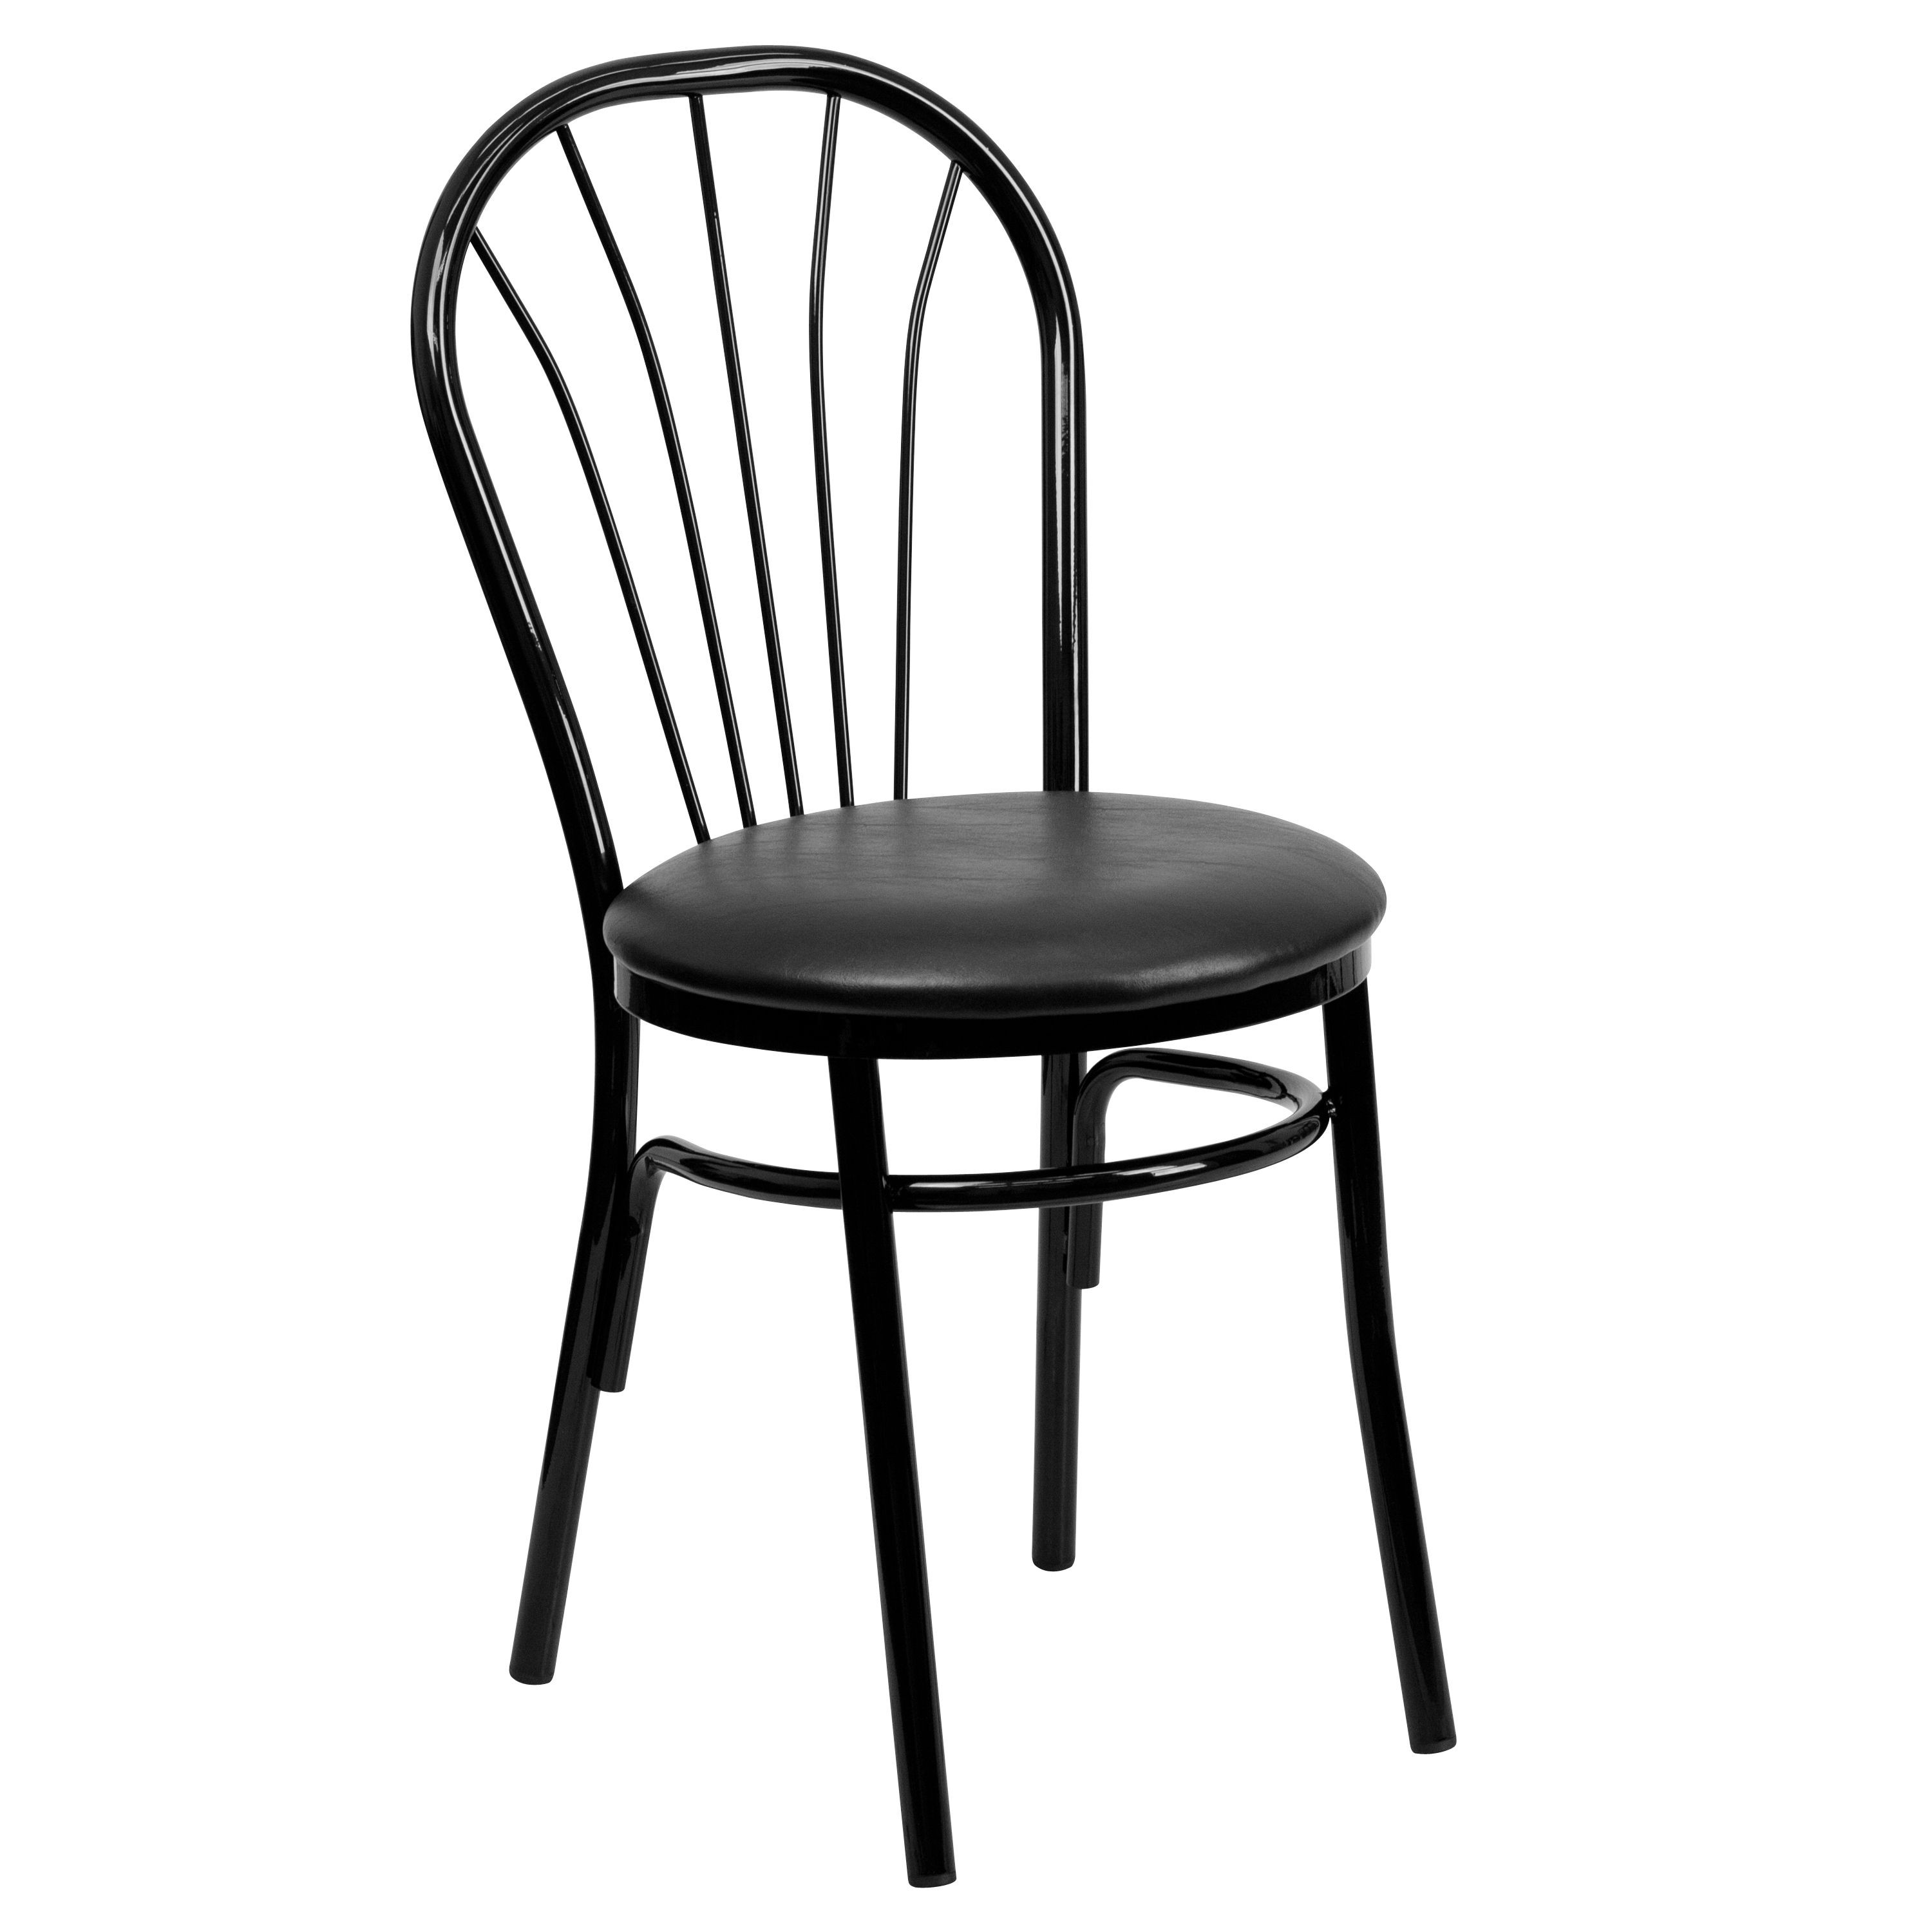 New Metal Fan Back Restaurant Chairs Black Vinyl Seat Lot Of 10 Free Shipping